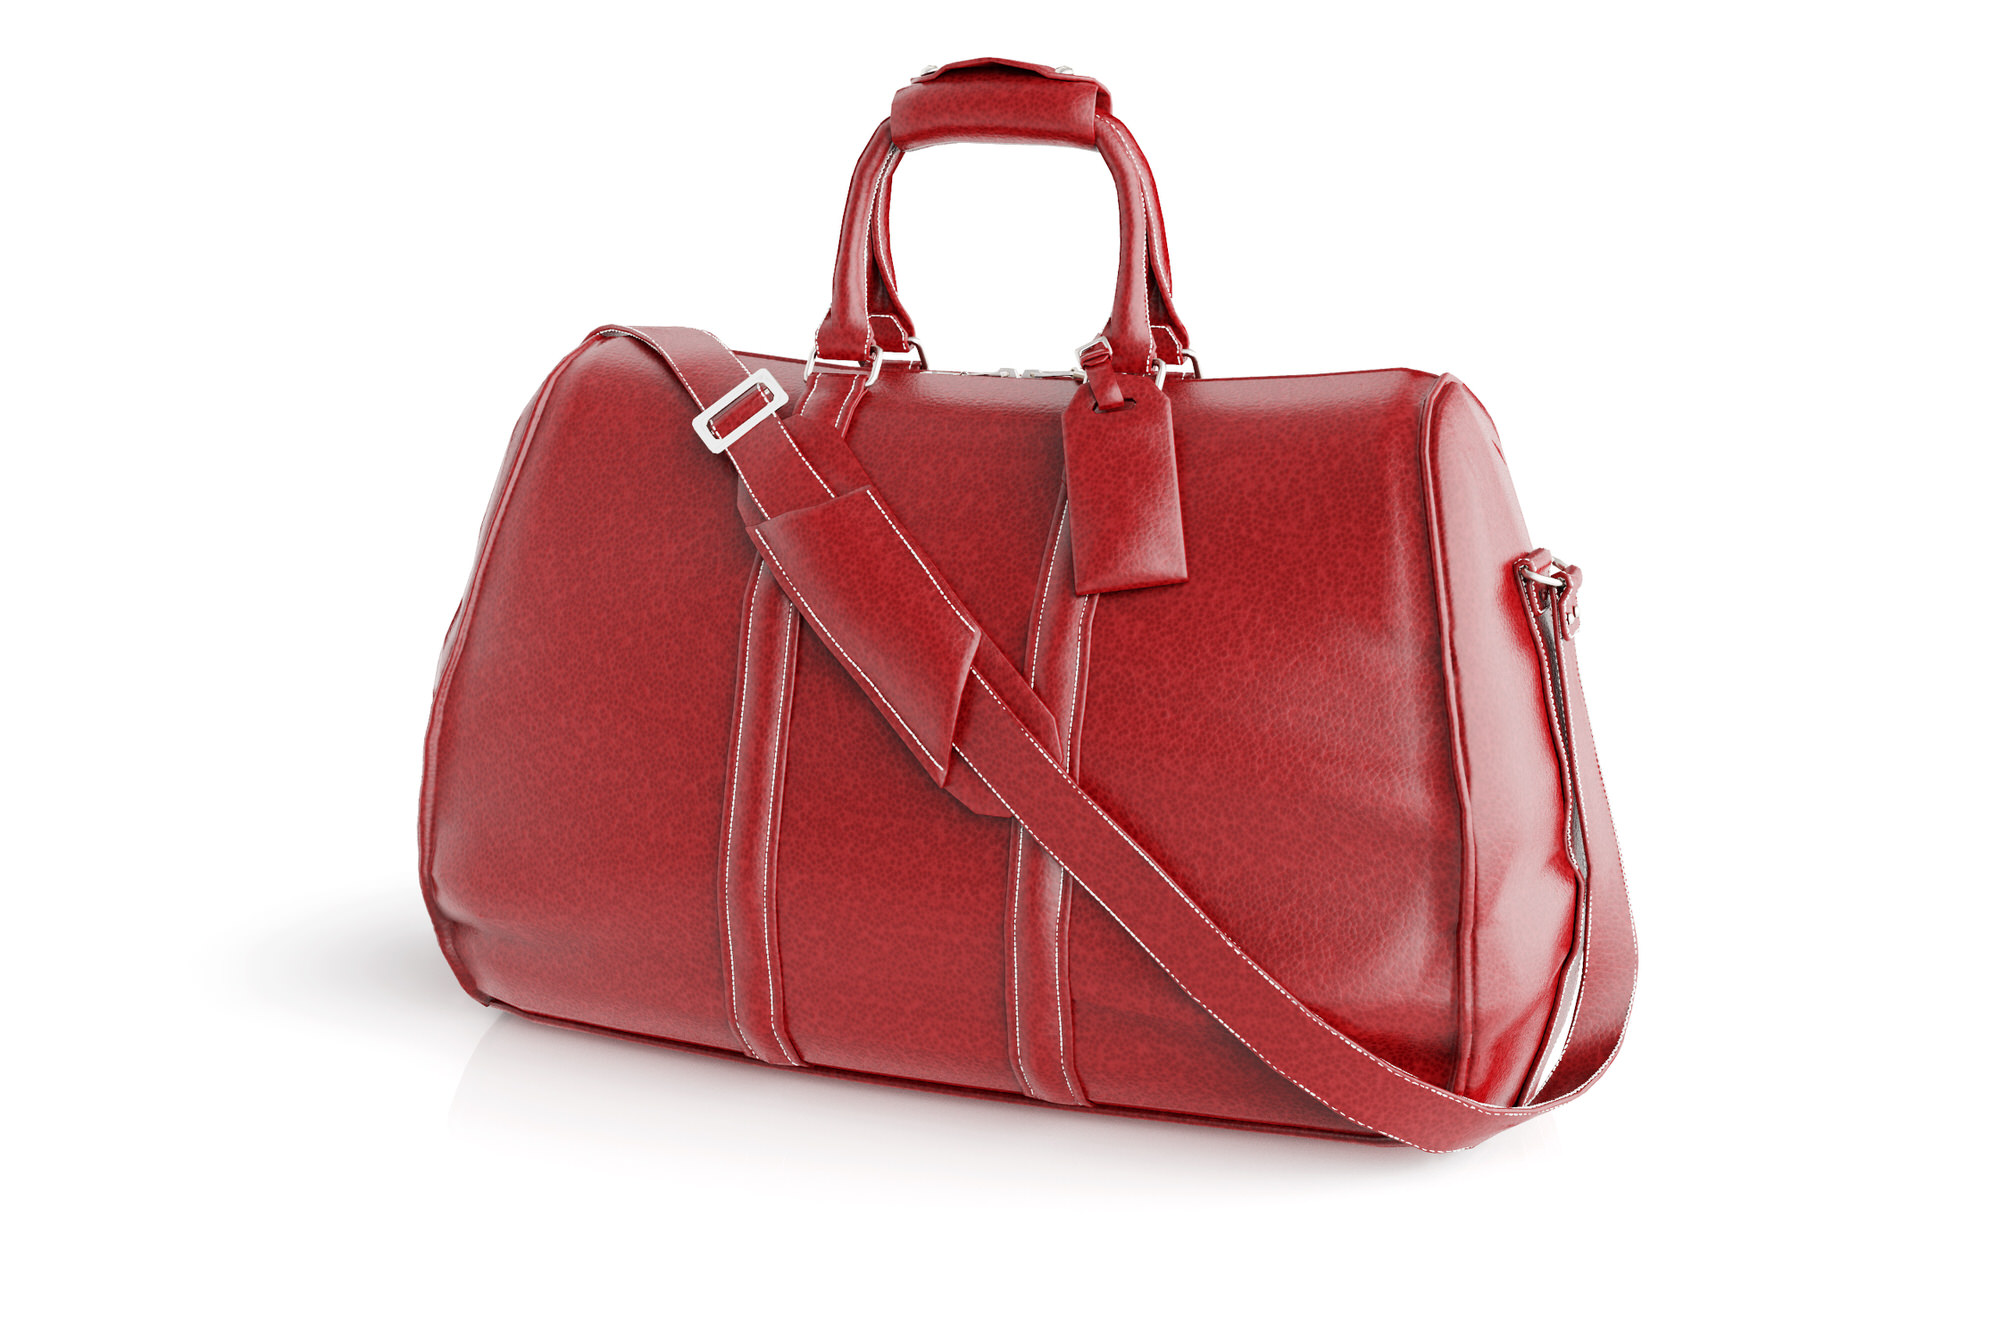 An ecommerce photograph of a red leather bag generated using Keyshot